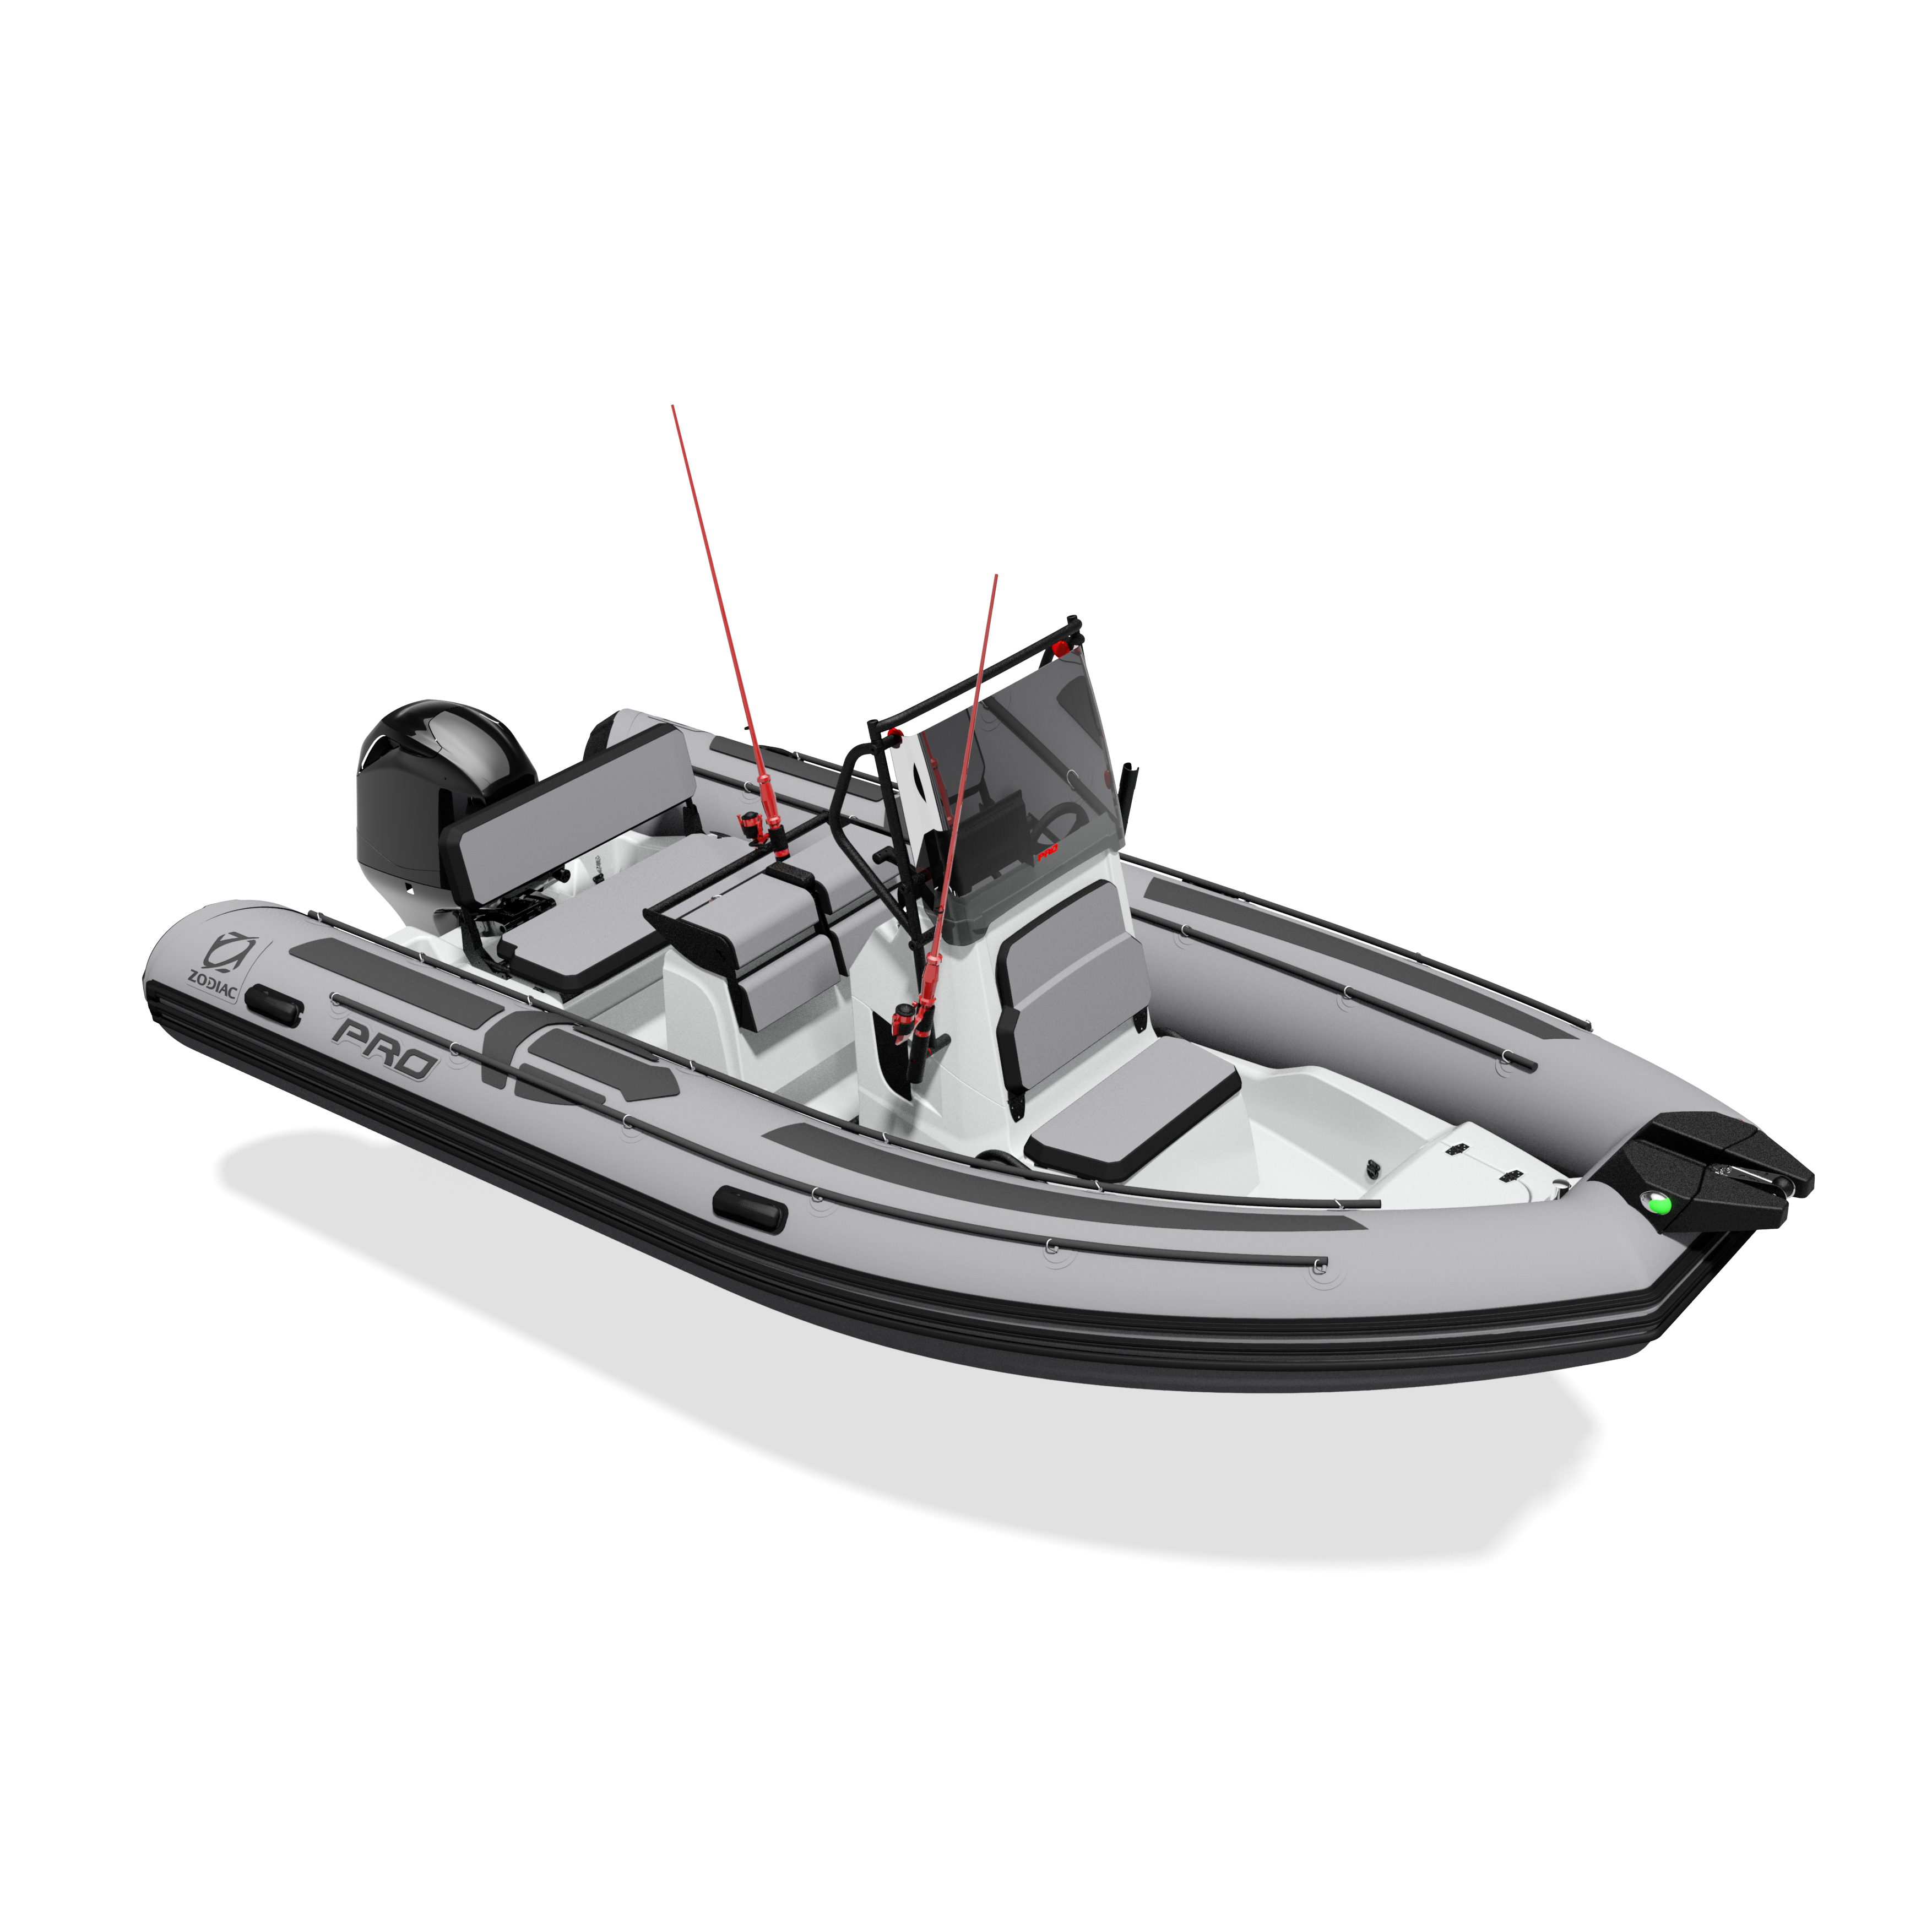 Pro 5.5 - Zodiac Nautic - Inflatable and Rigid Inflatable Boats